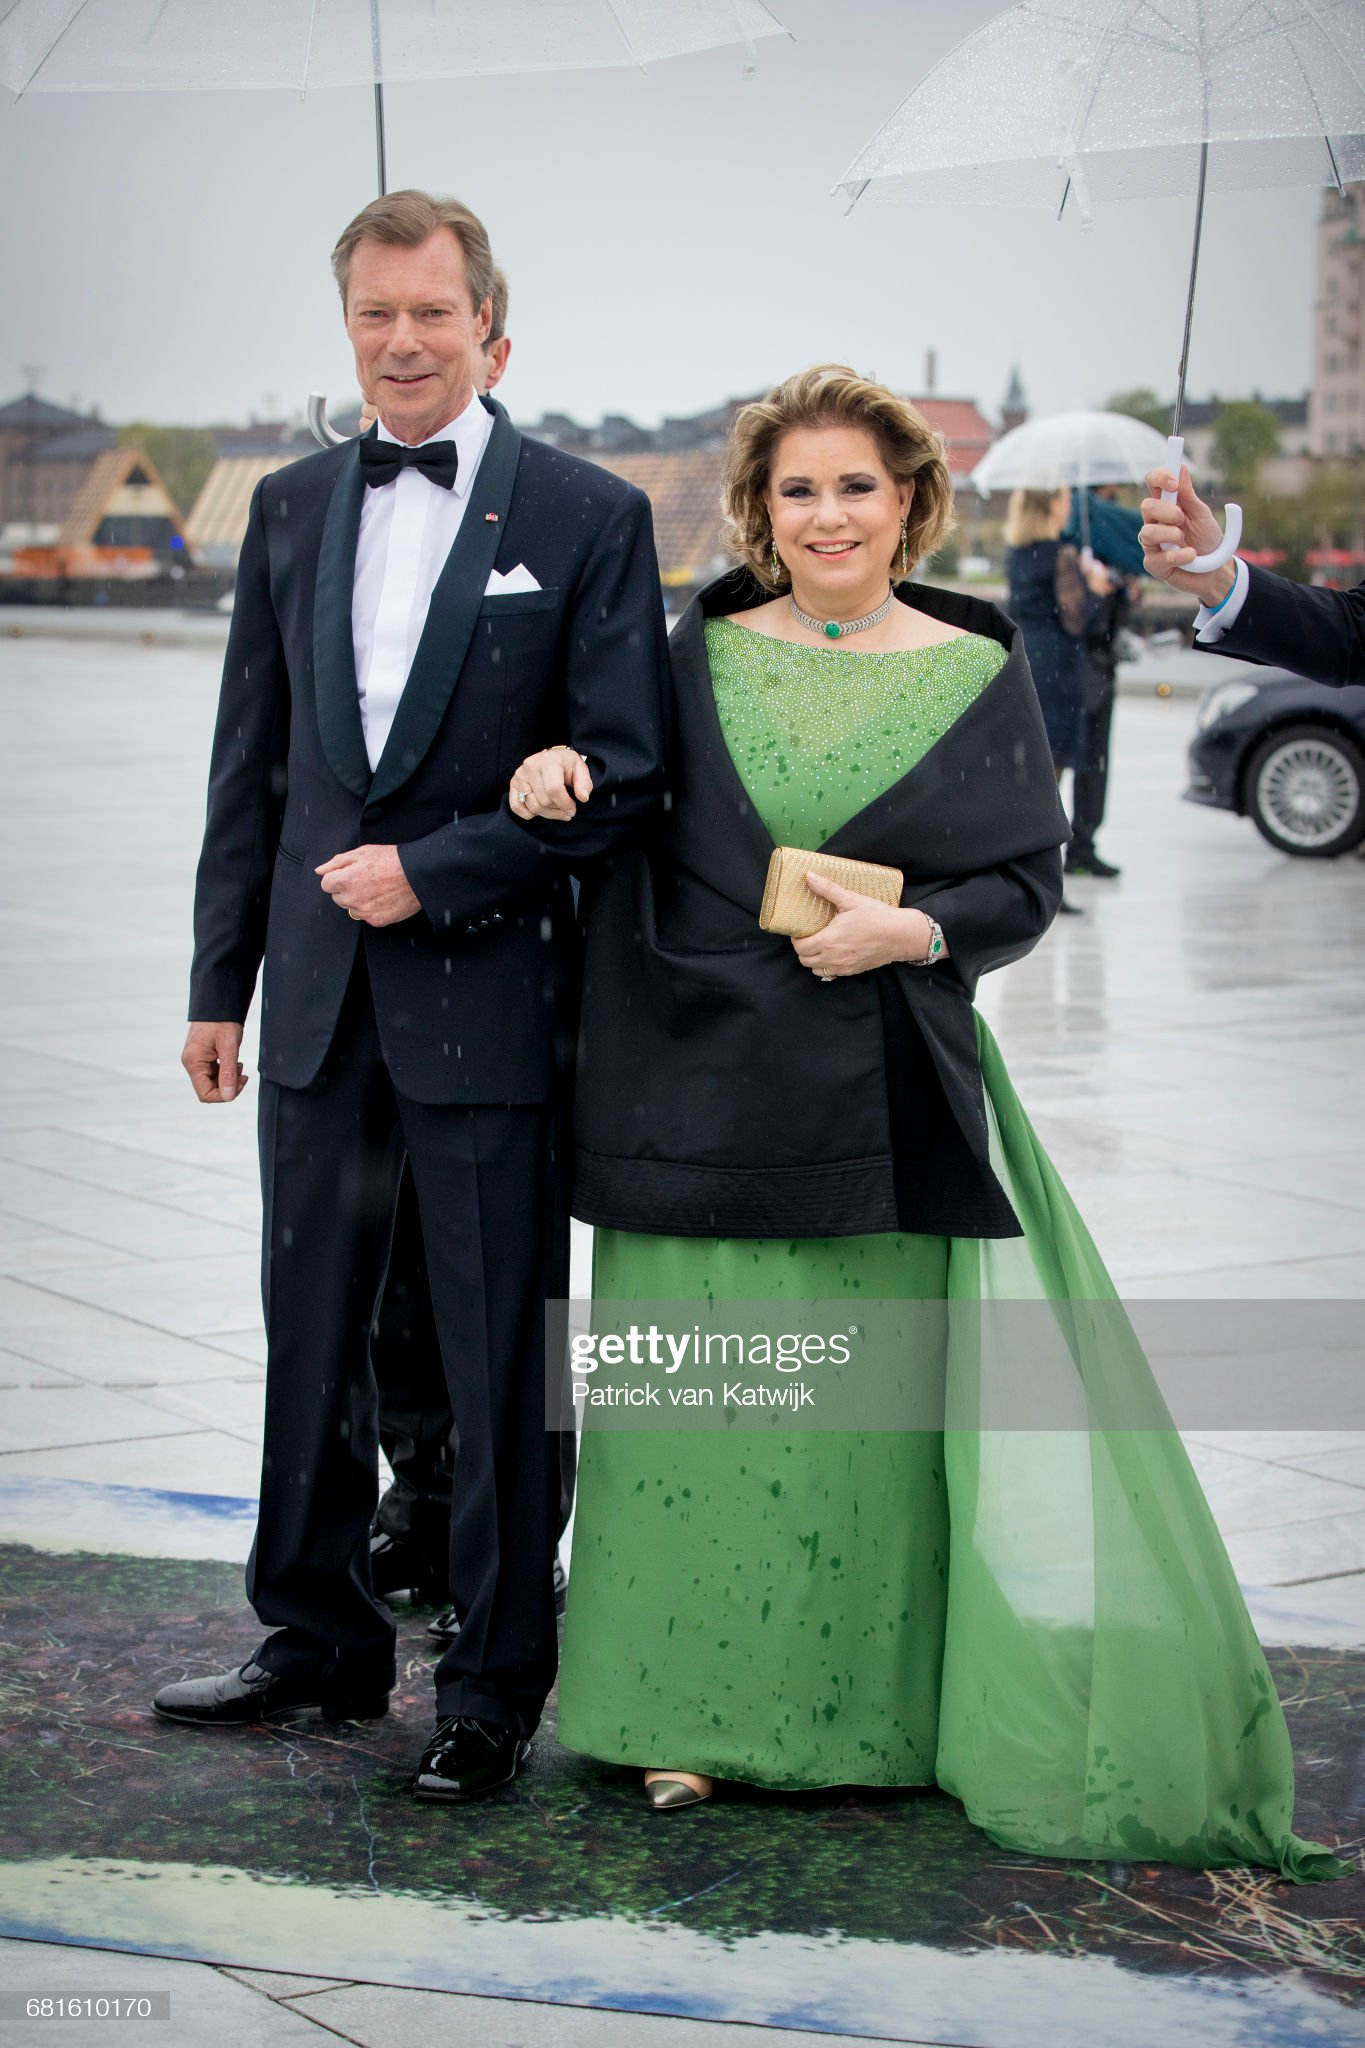 King and Queen Of Norway Celebrate Their 80th Birthdays - Banquet At The Opera House - Day 2 : News Photo